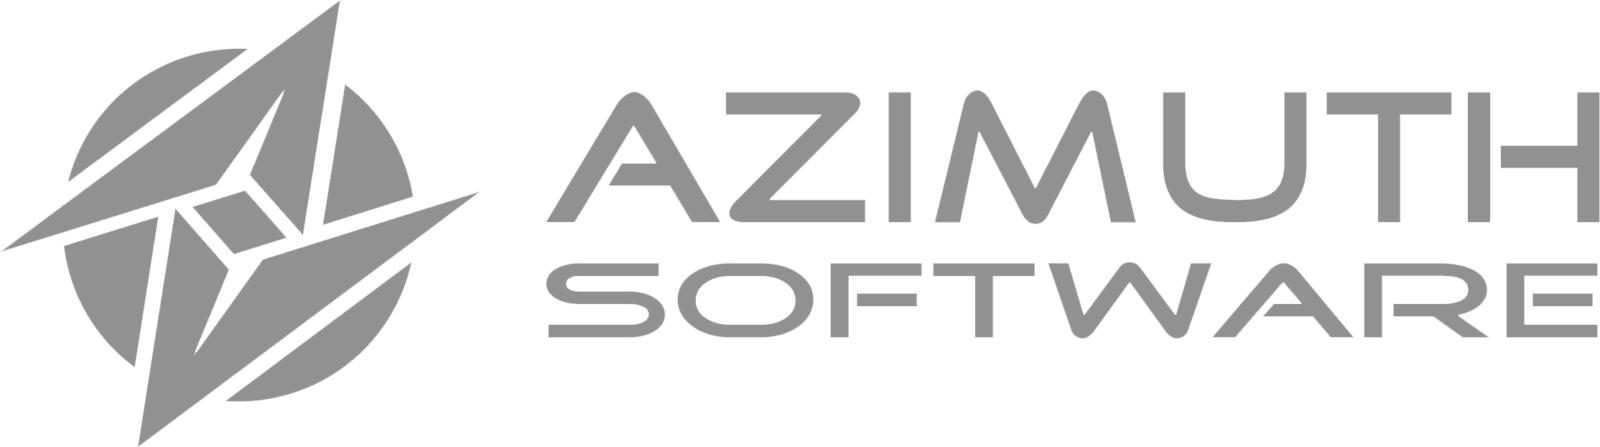 Azimuth Software